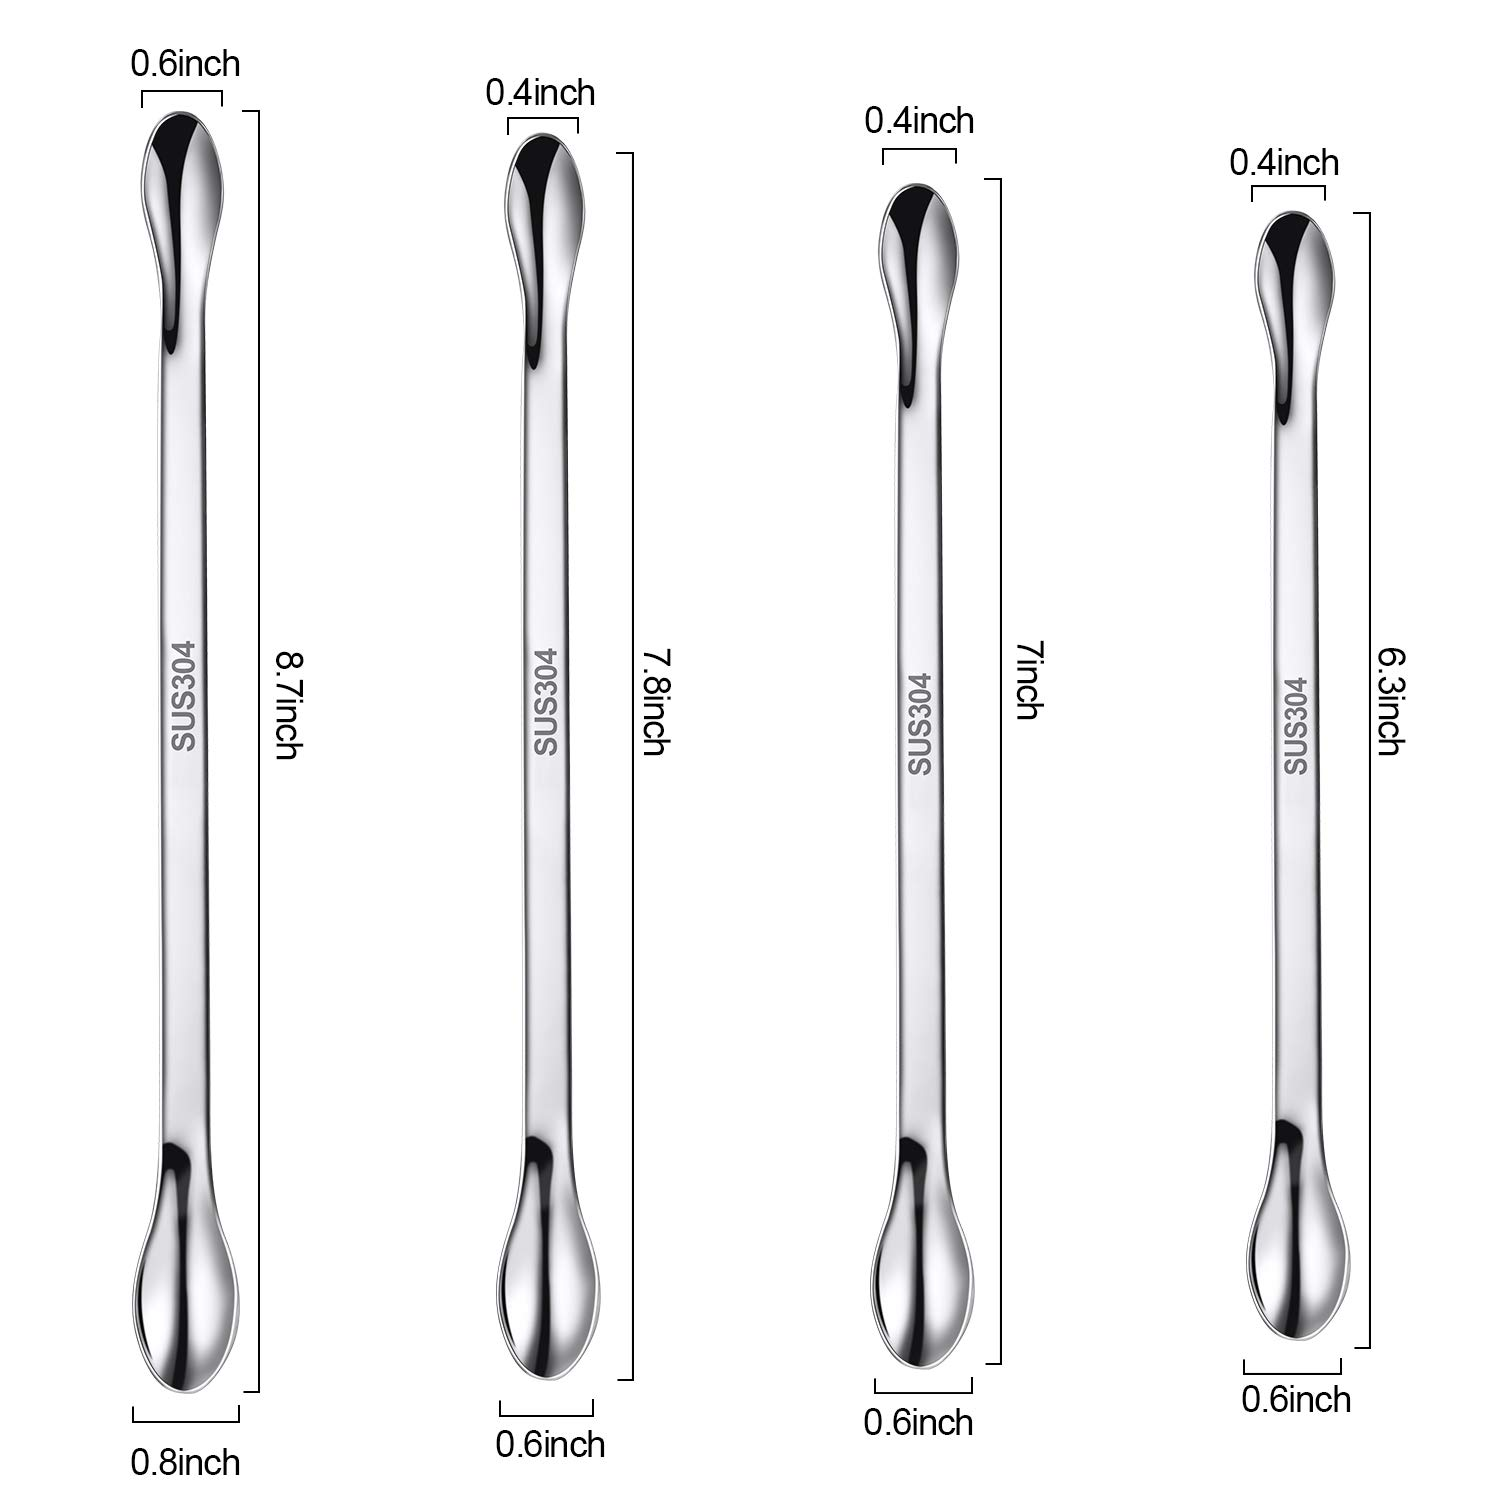 22 Pieces Stainless Steel Lab Spatula Micro Scoop Set Laboratory Sampling Spoon Mixing Spatula for Powders Gel Cap Filler